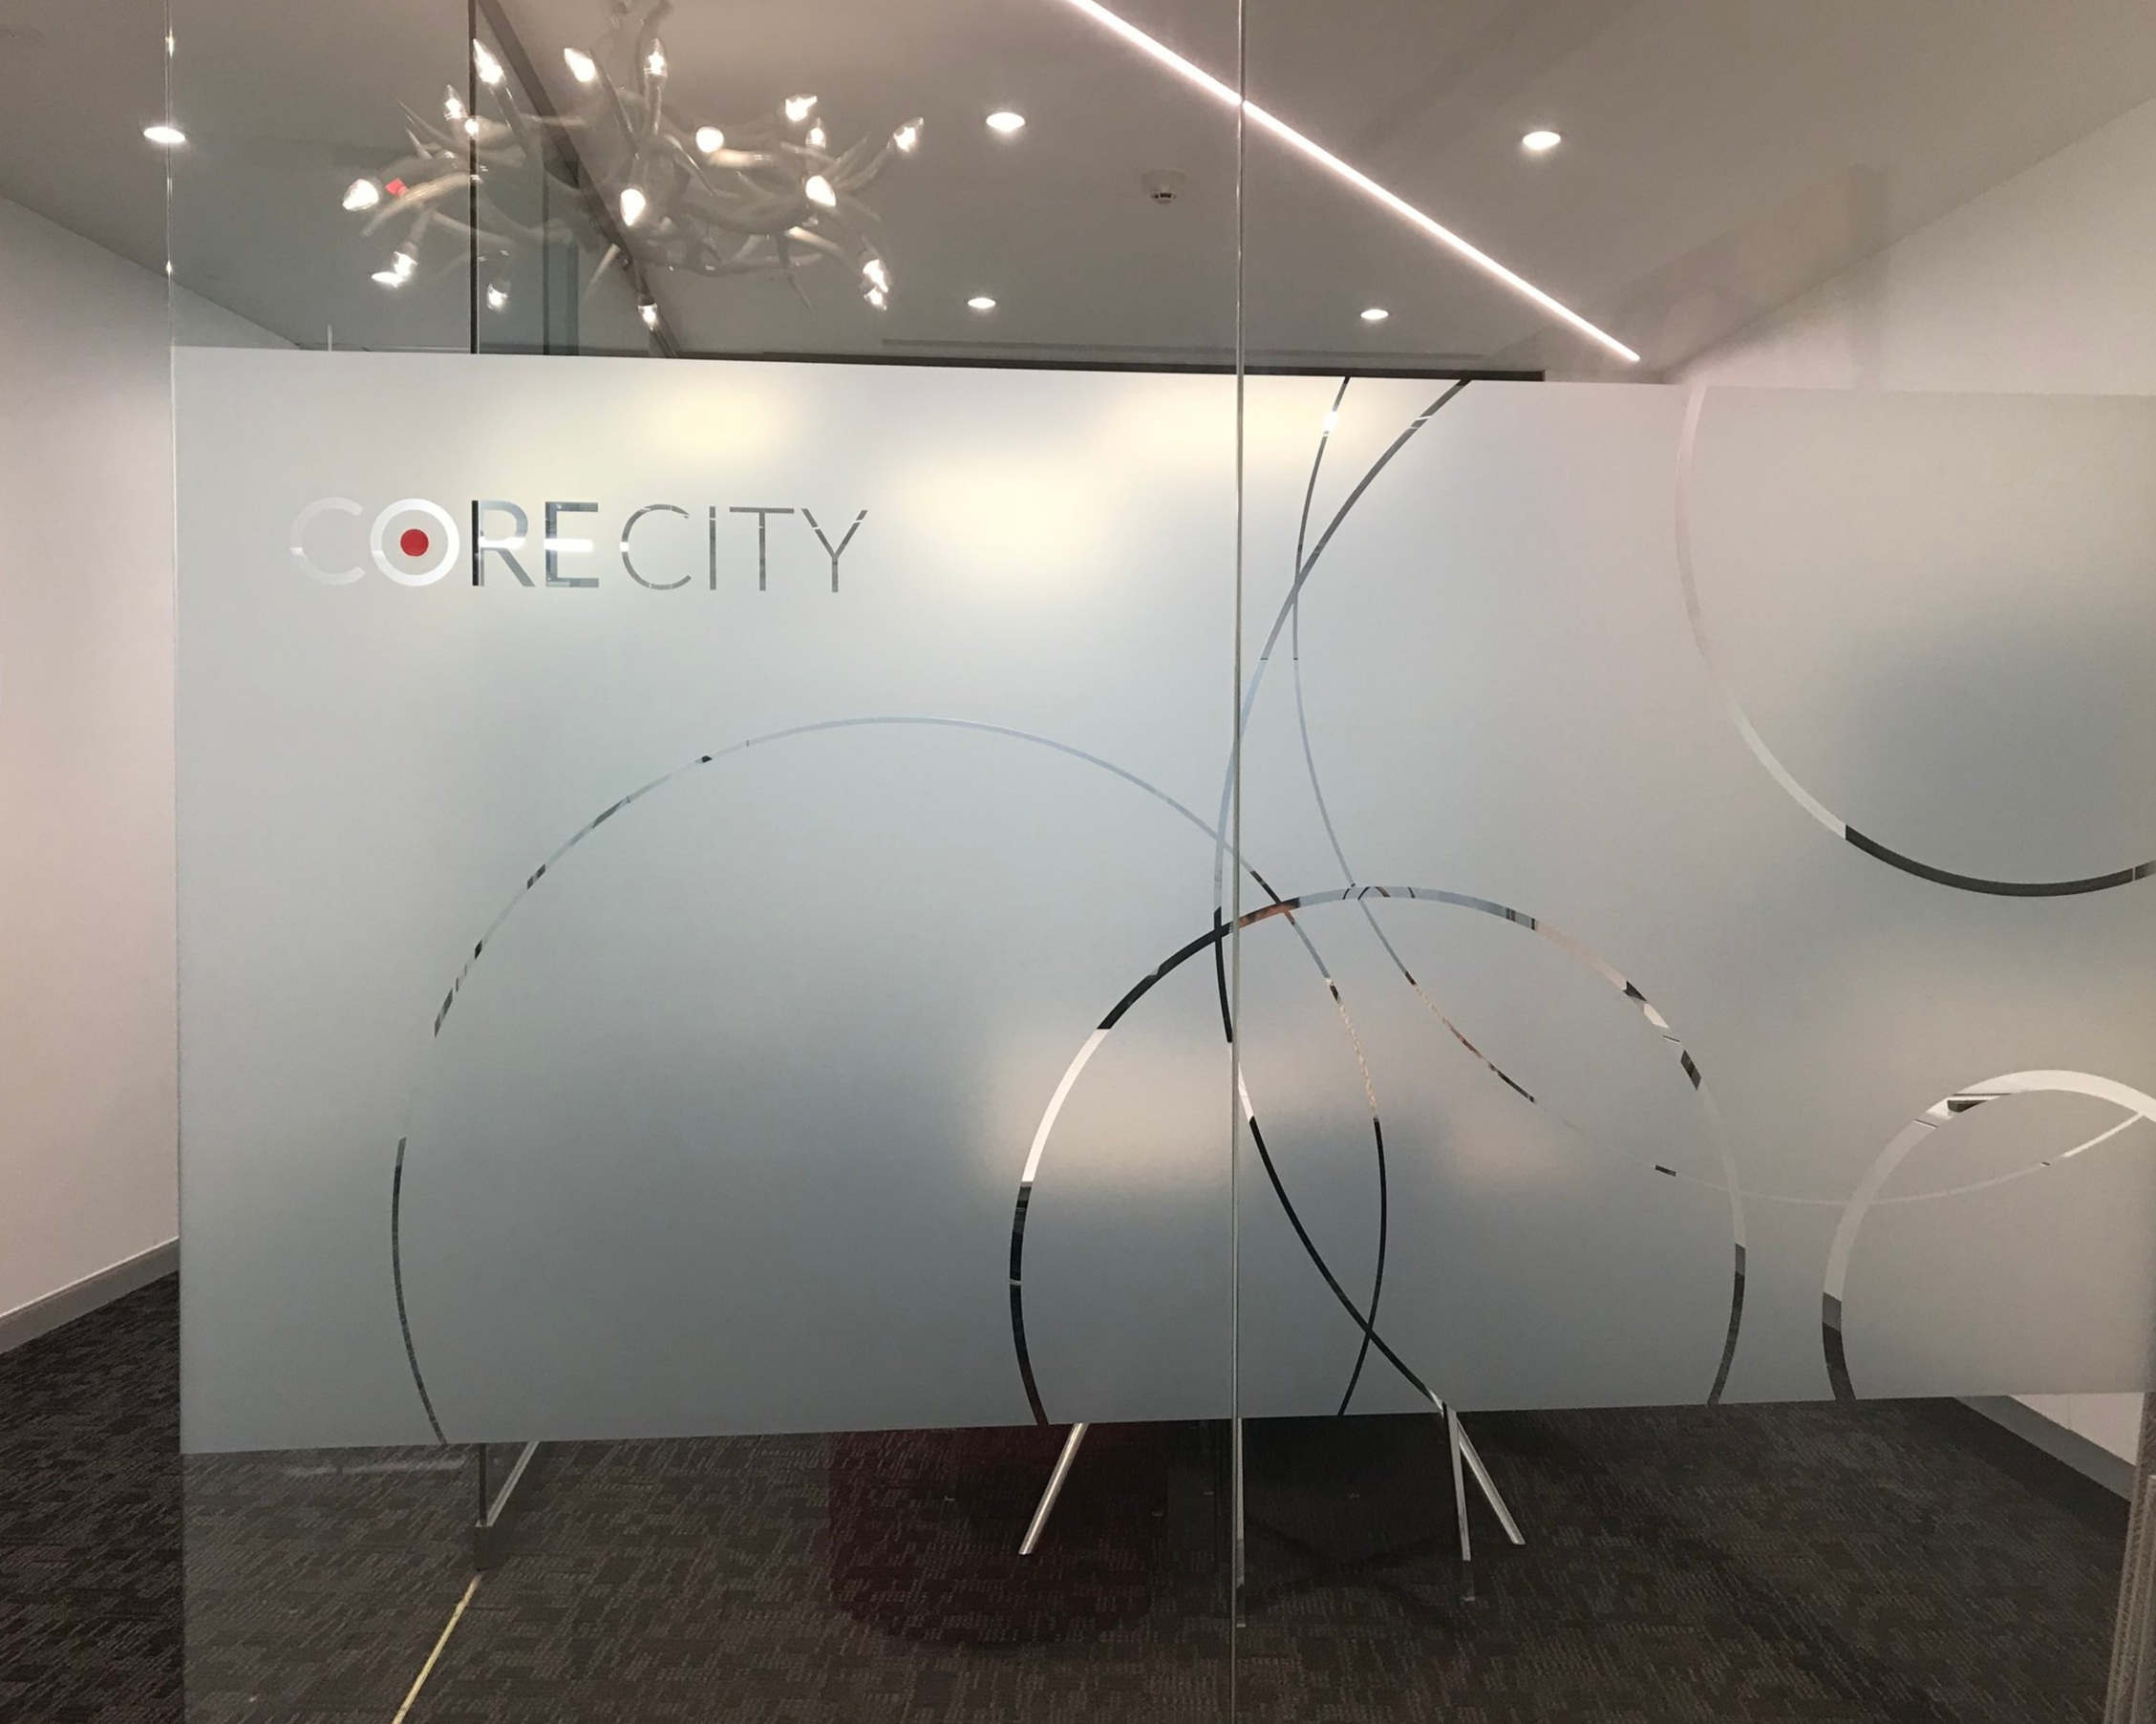 Logo and brand pattern signage on frosted glass